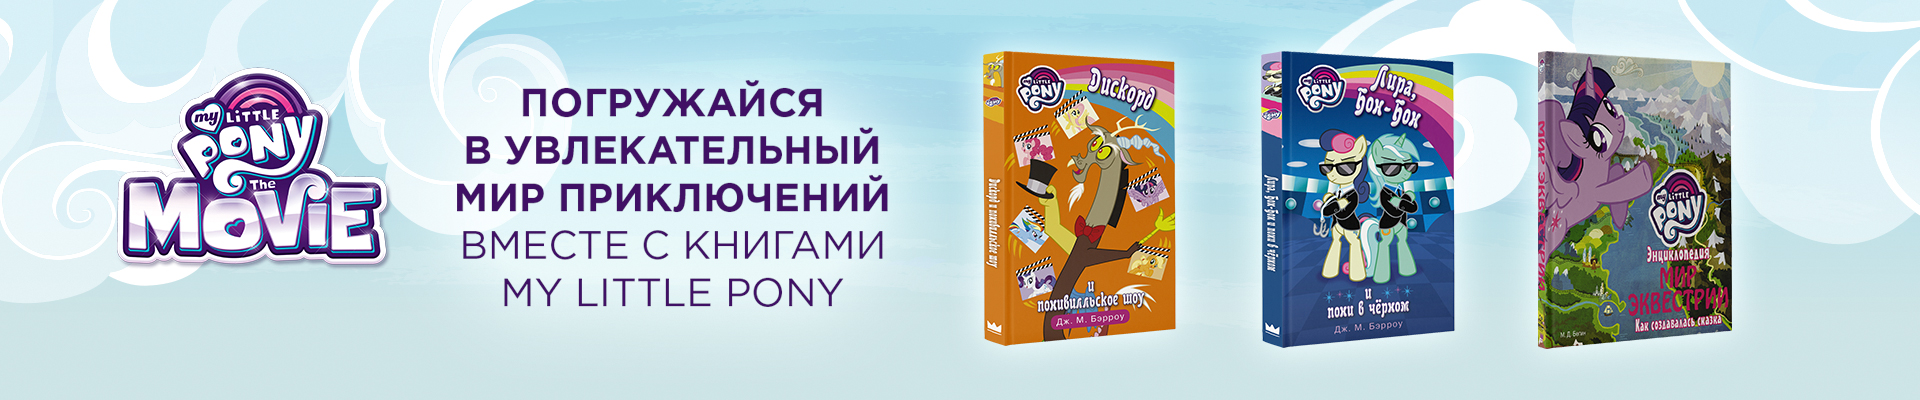 My little pony книги